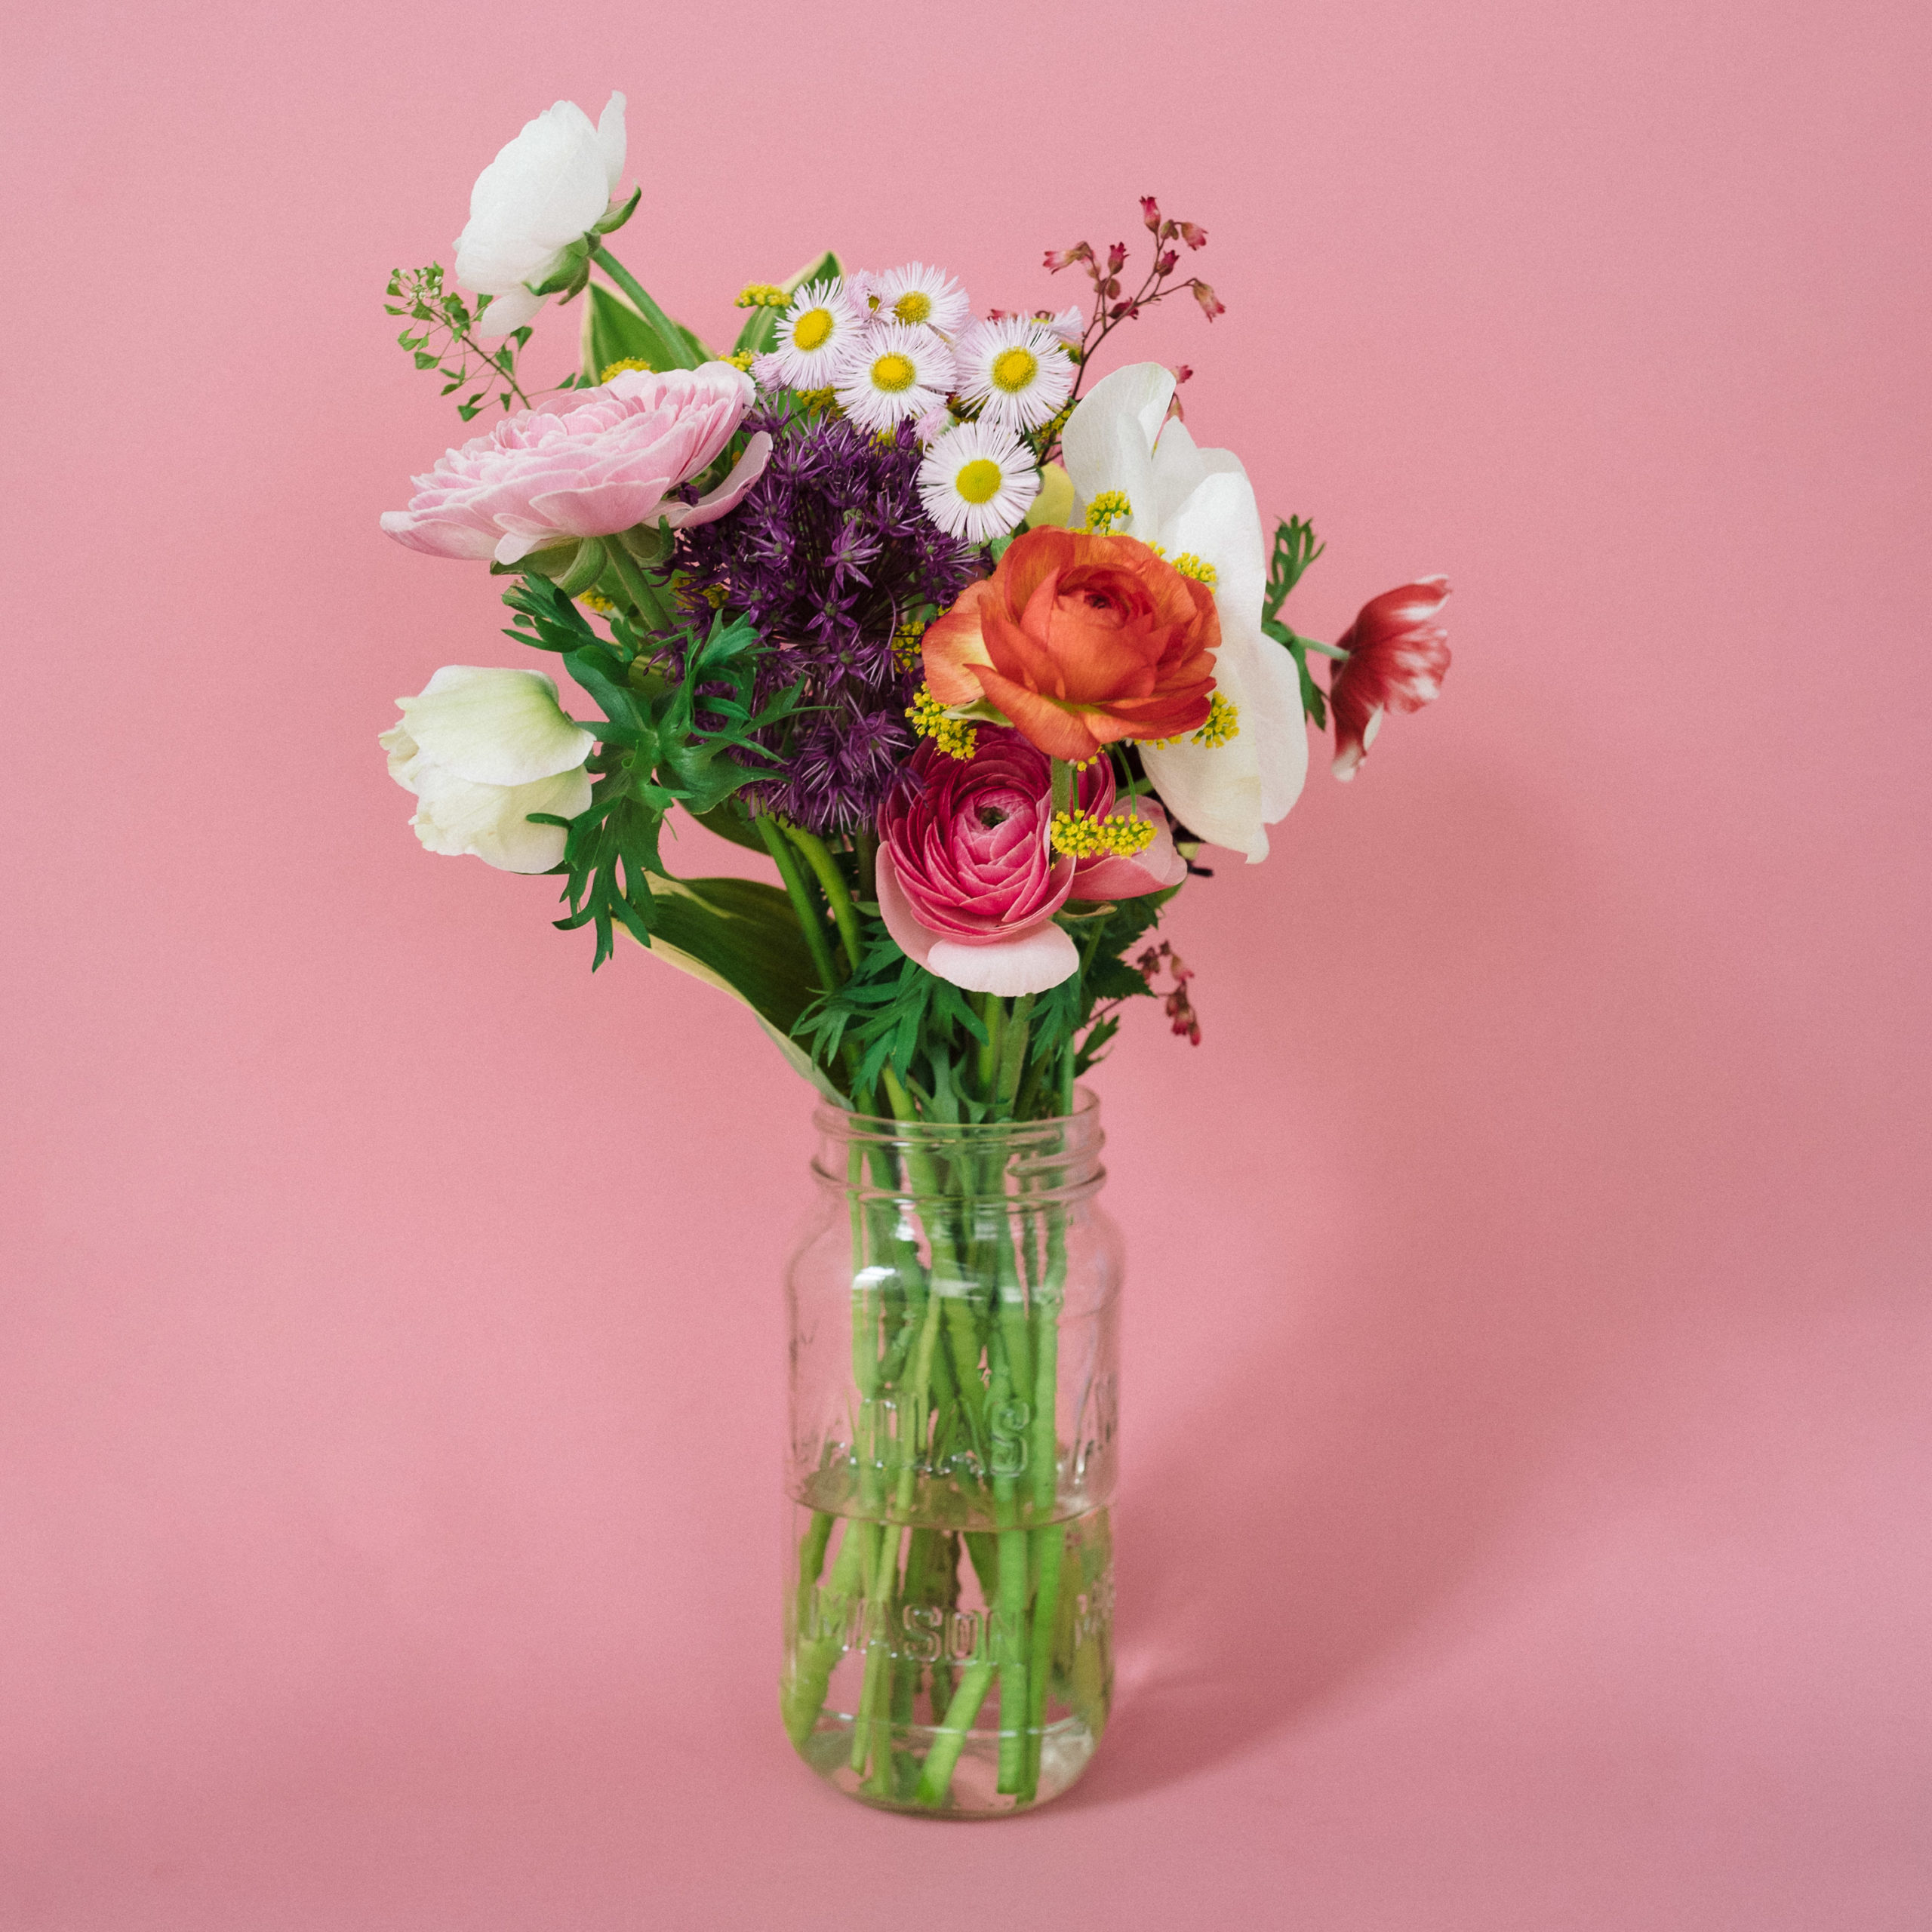 A bouquet of flowers on a pink backdrop